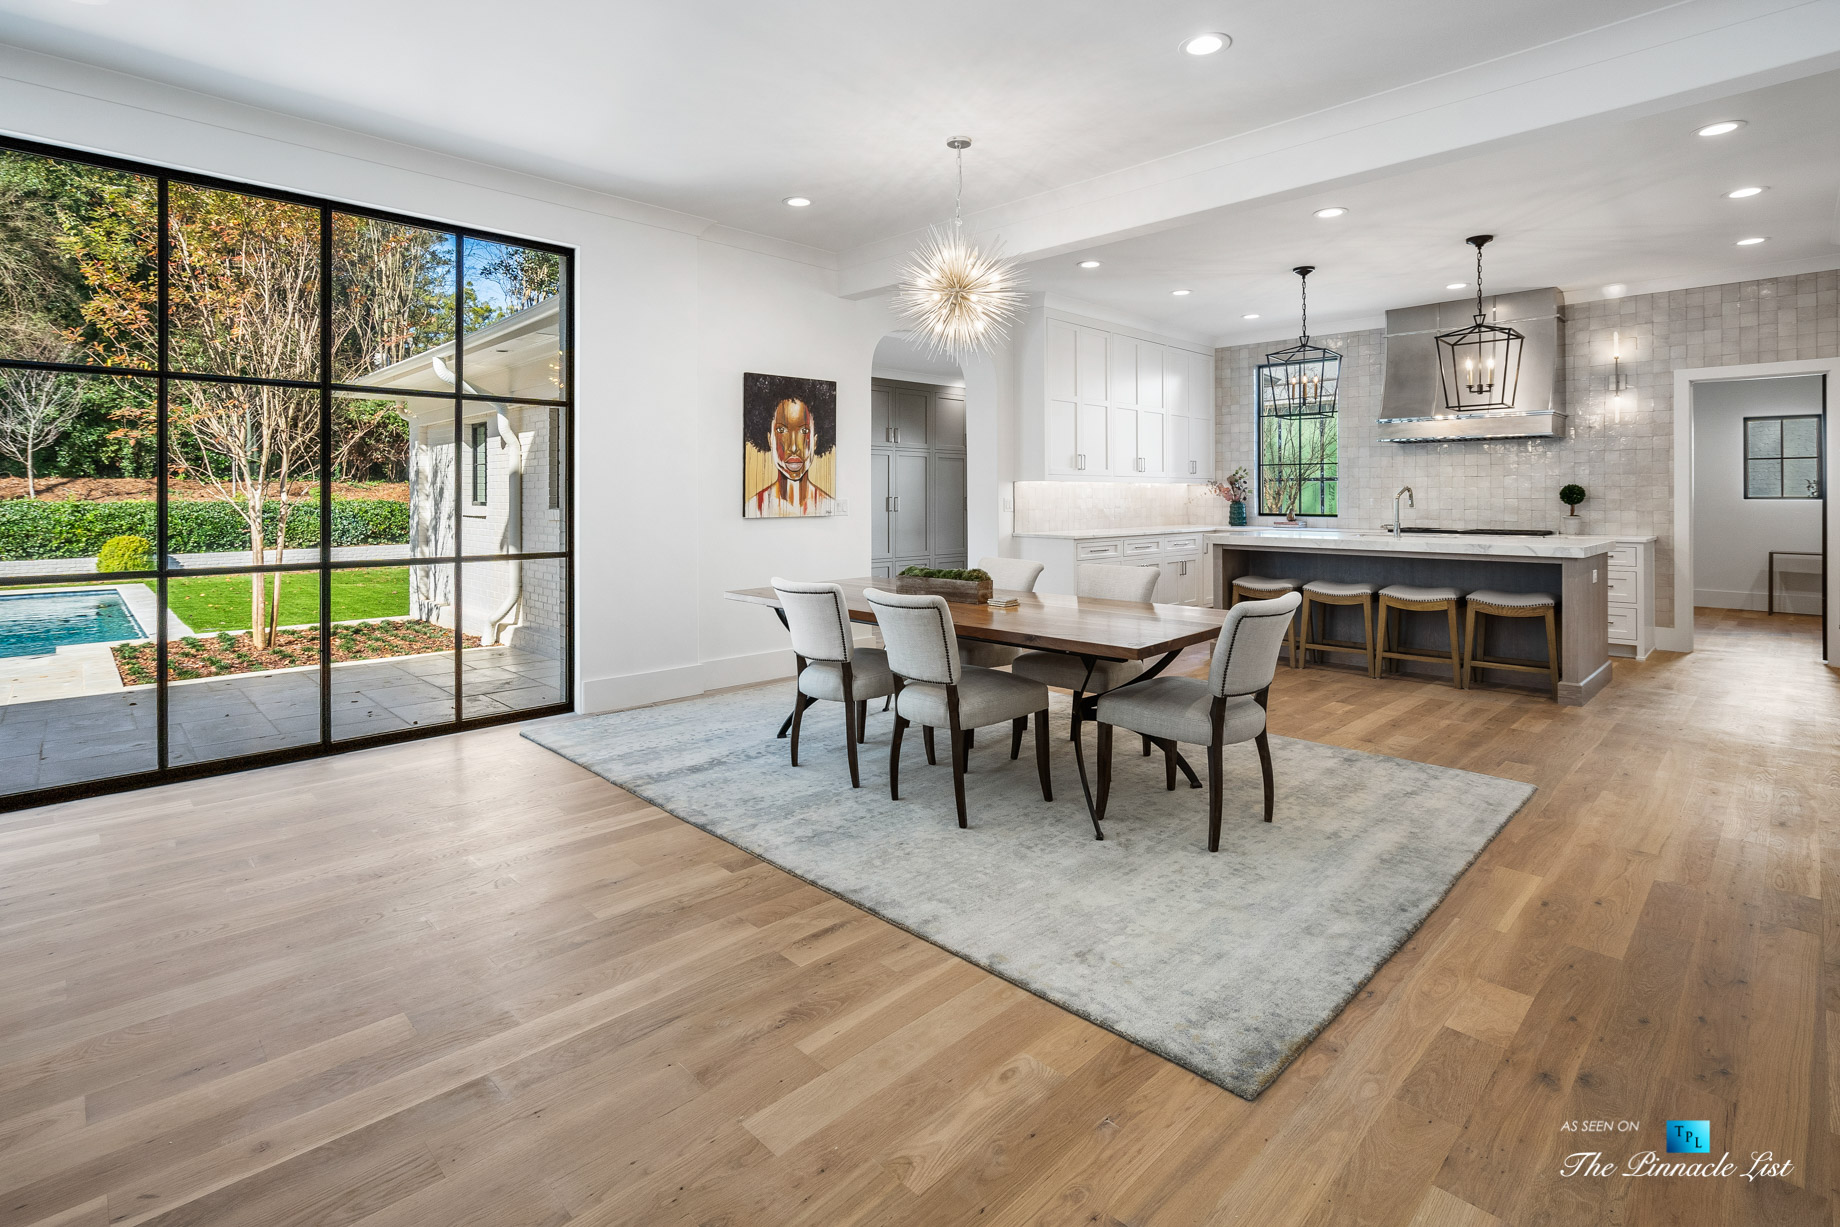 447 Valley Rd NW, Atlanta, GA, USA - Dining Room and Kitchen - Luxury Real Estate - Tuxedo Park Home